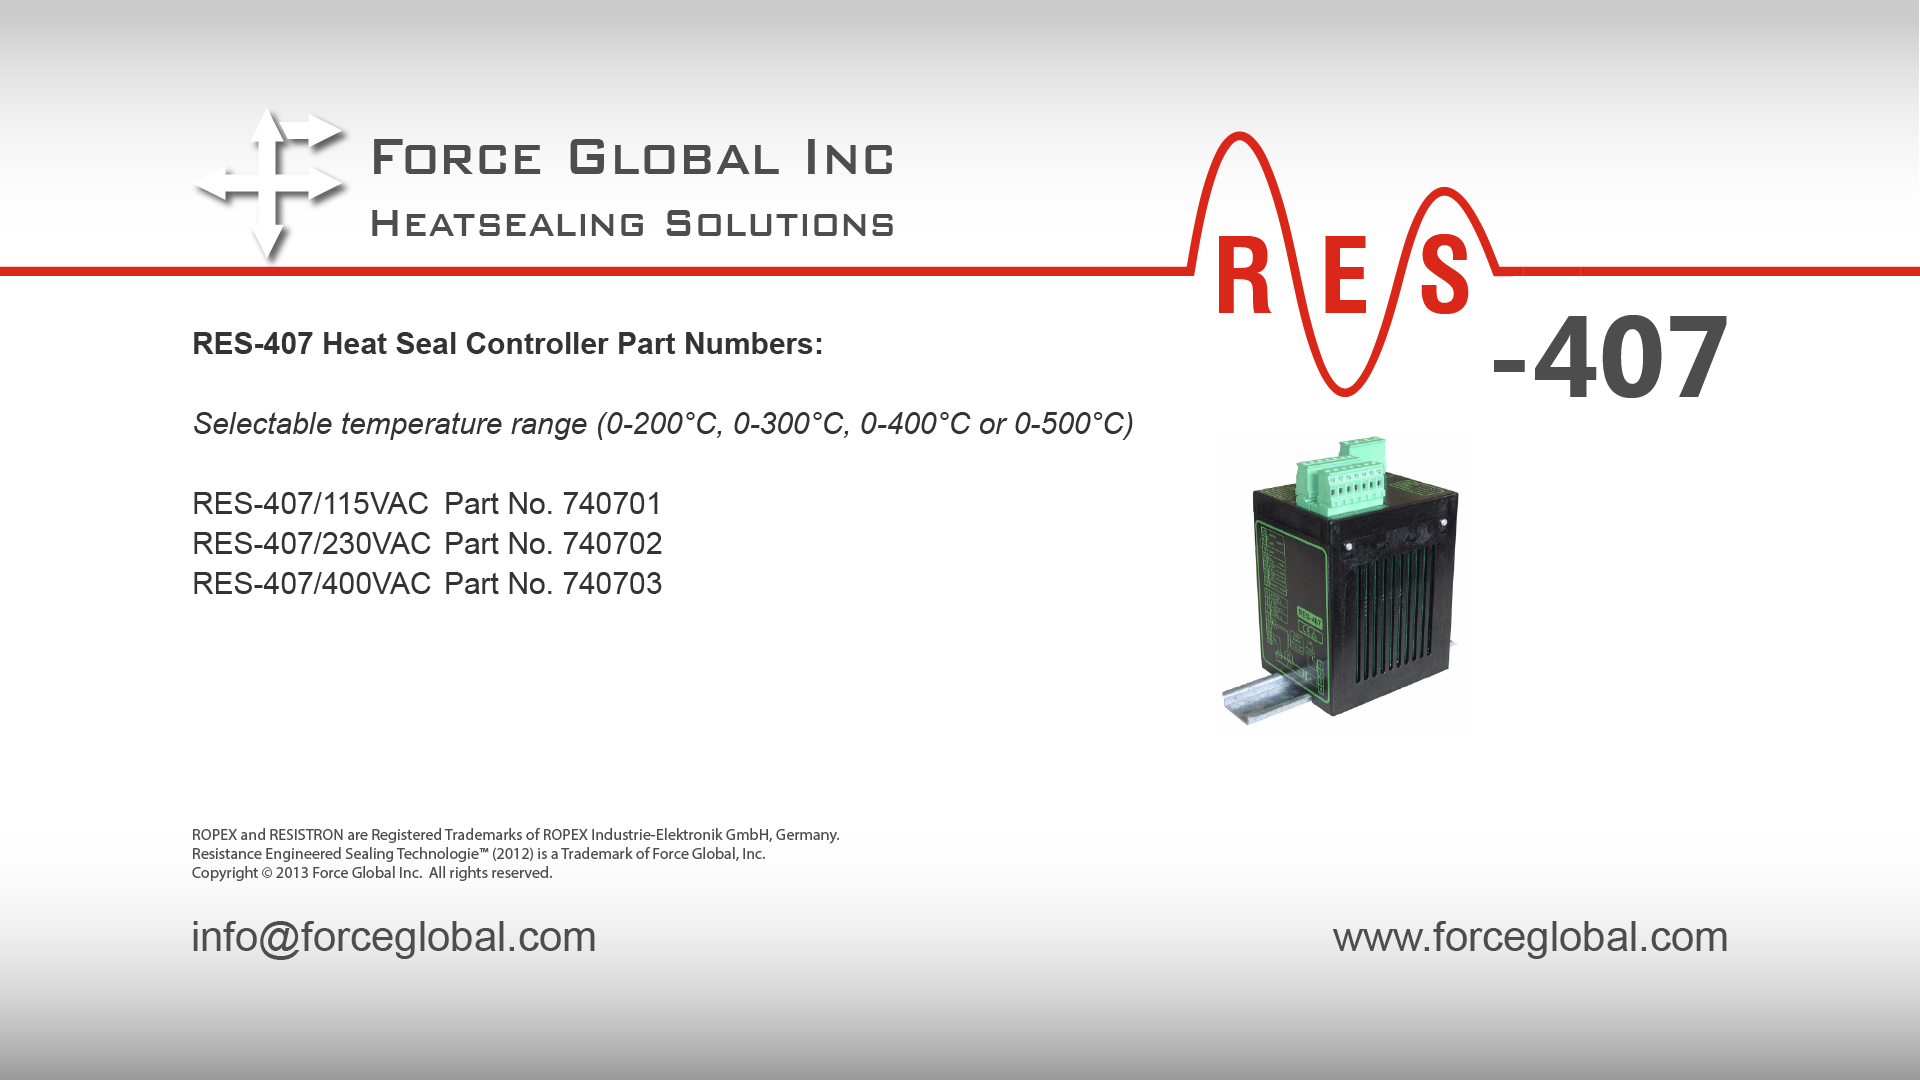 Force Global Ropex RES-407 Heatsealing Solutions